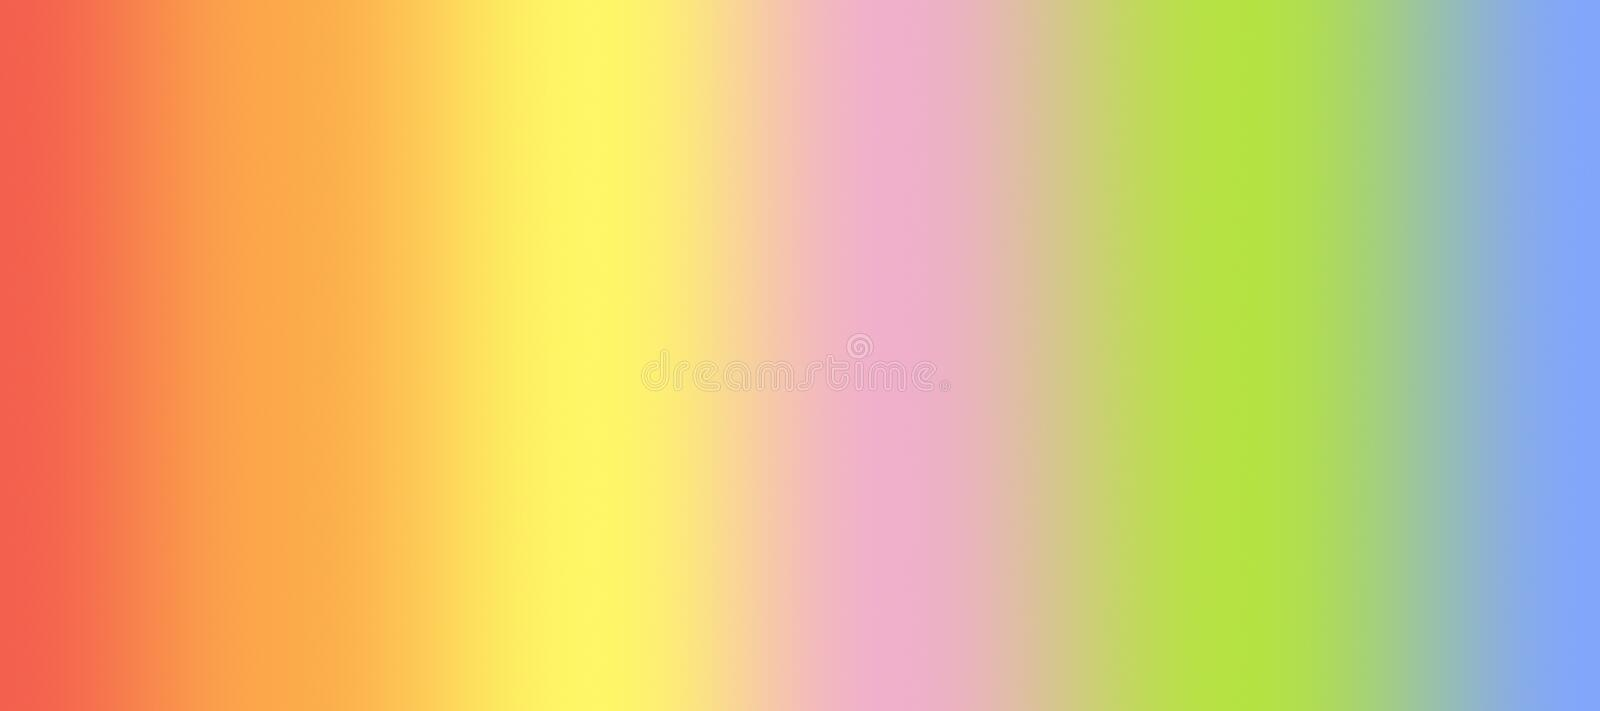 Soft smooth rainbow vertical blended stripes abstract blur gradient background illustration stock illustration